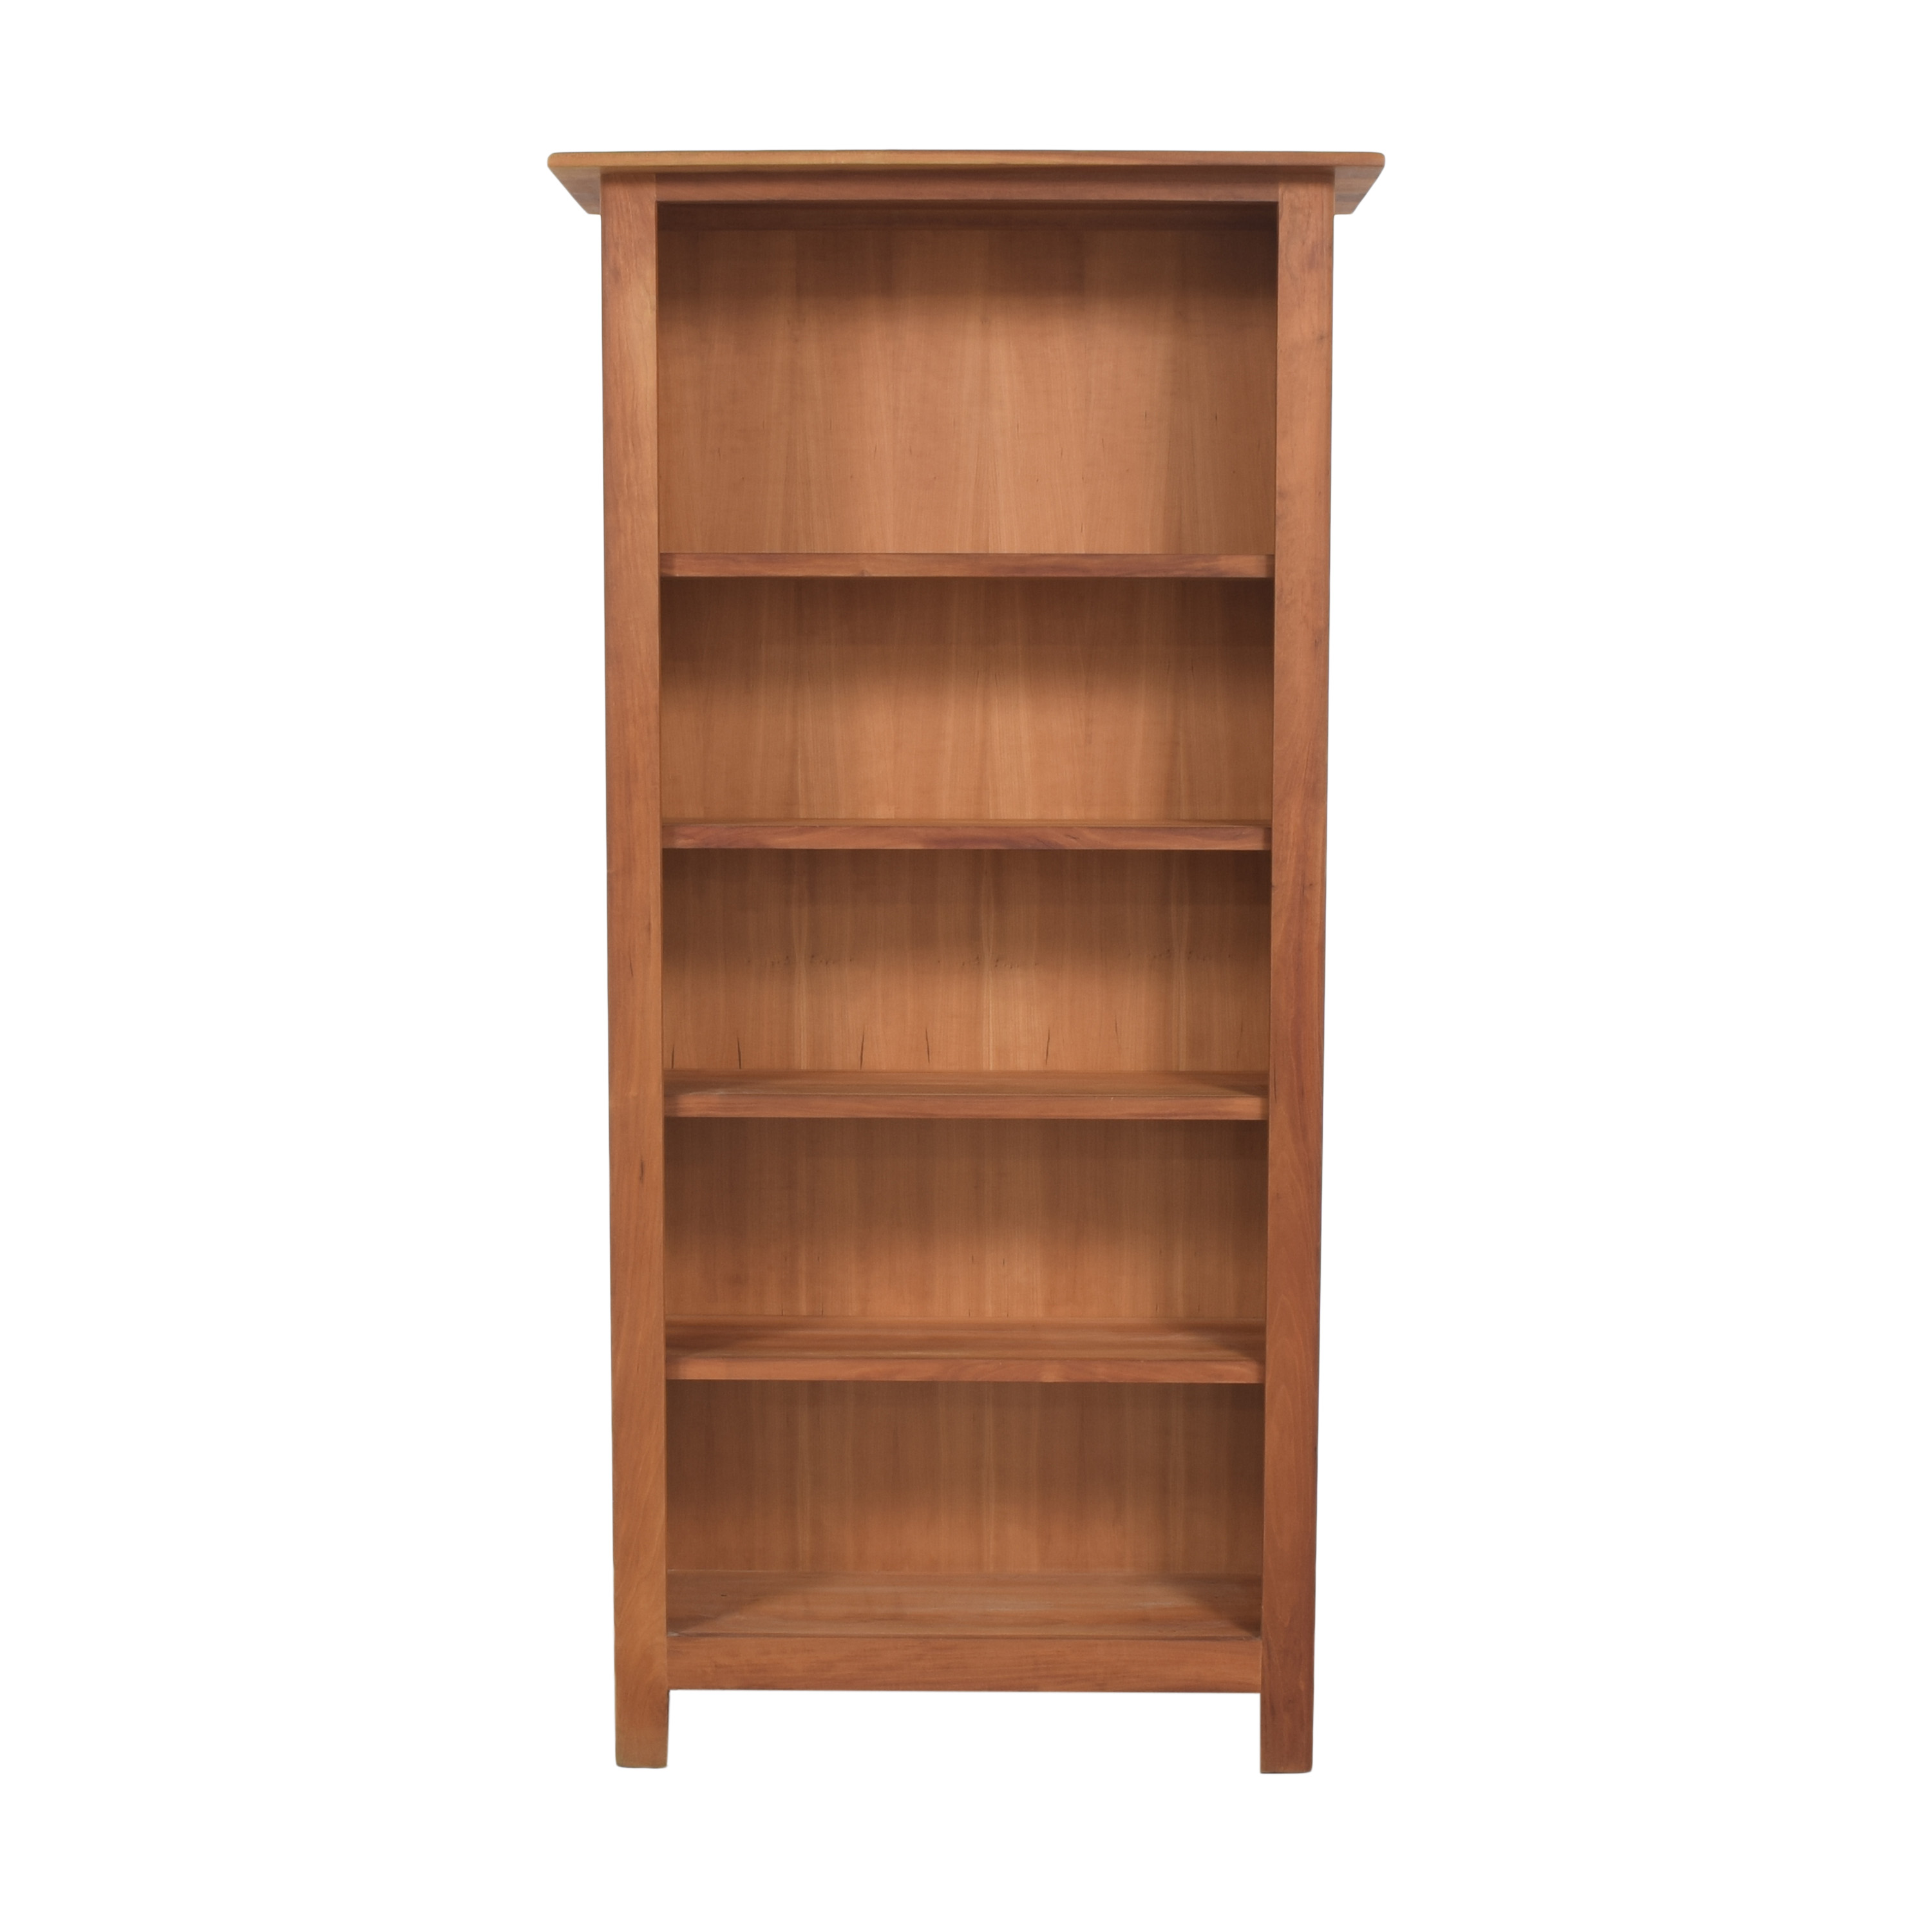 buy Scott Jordan Furniture Scott Jordan Furniture Tall Bookcase online